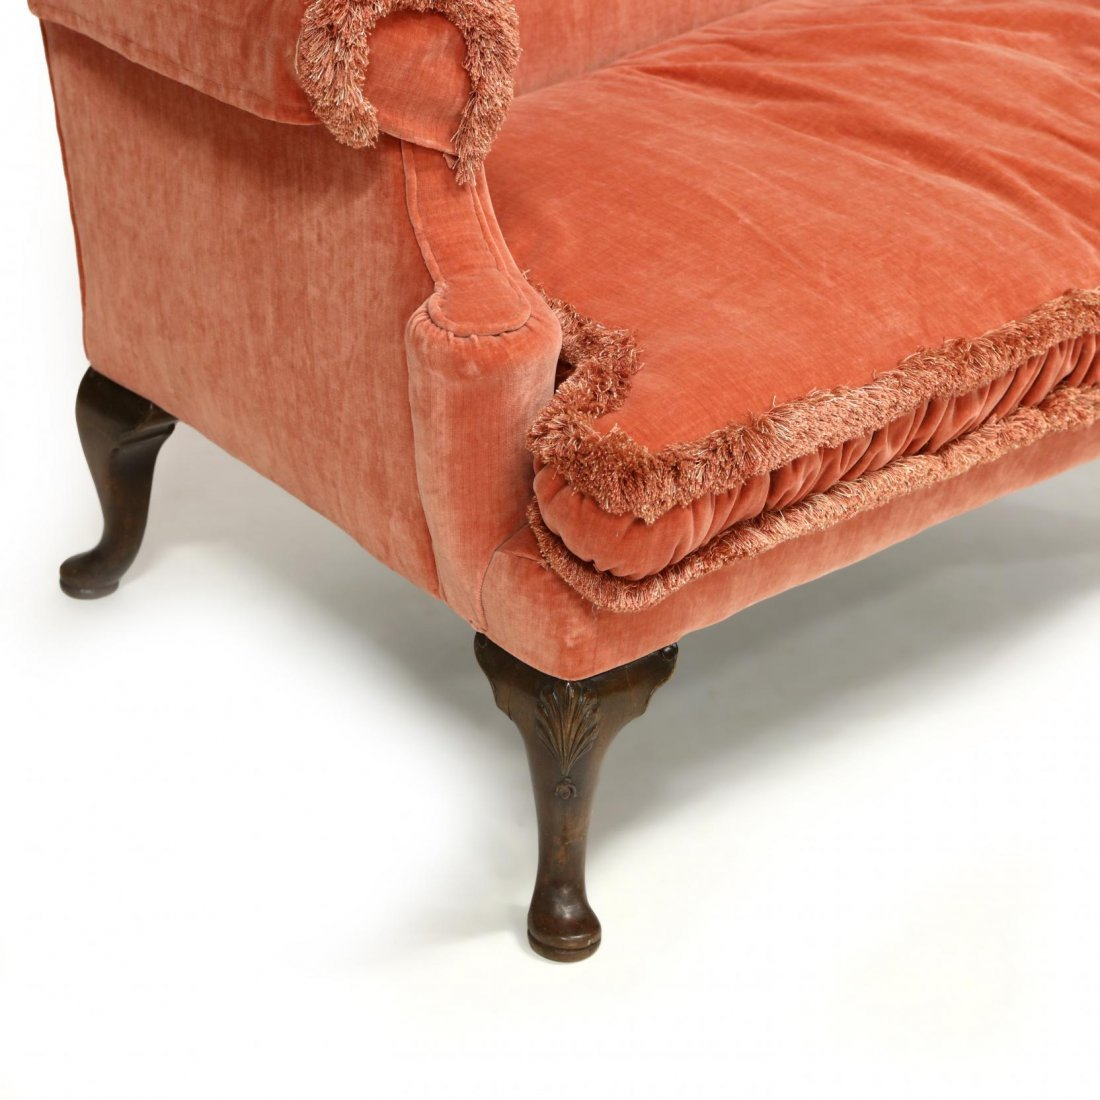 Queen Anne Style Overupholstered Settee - 2